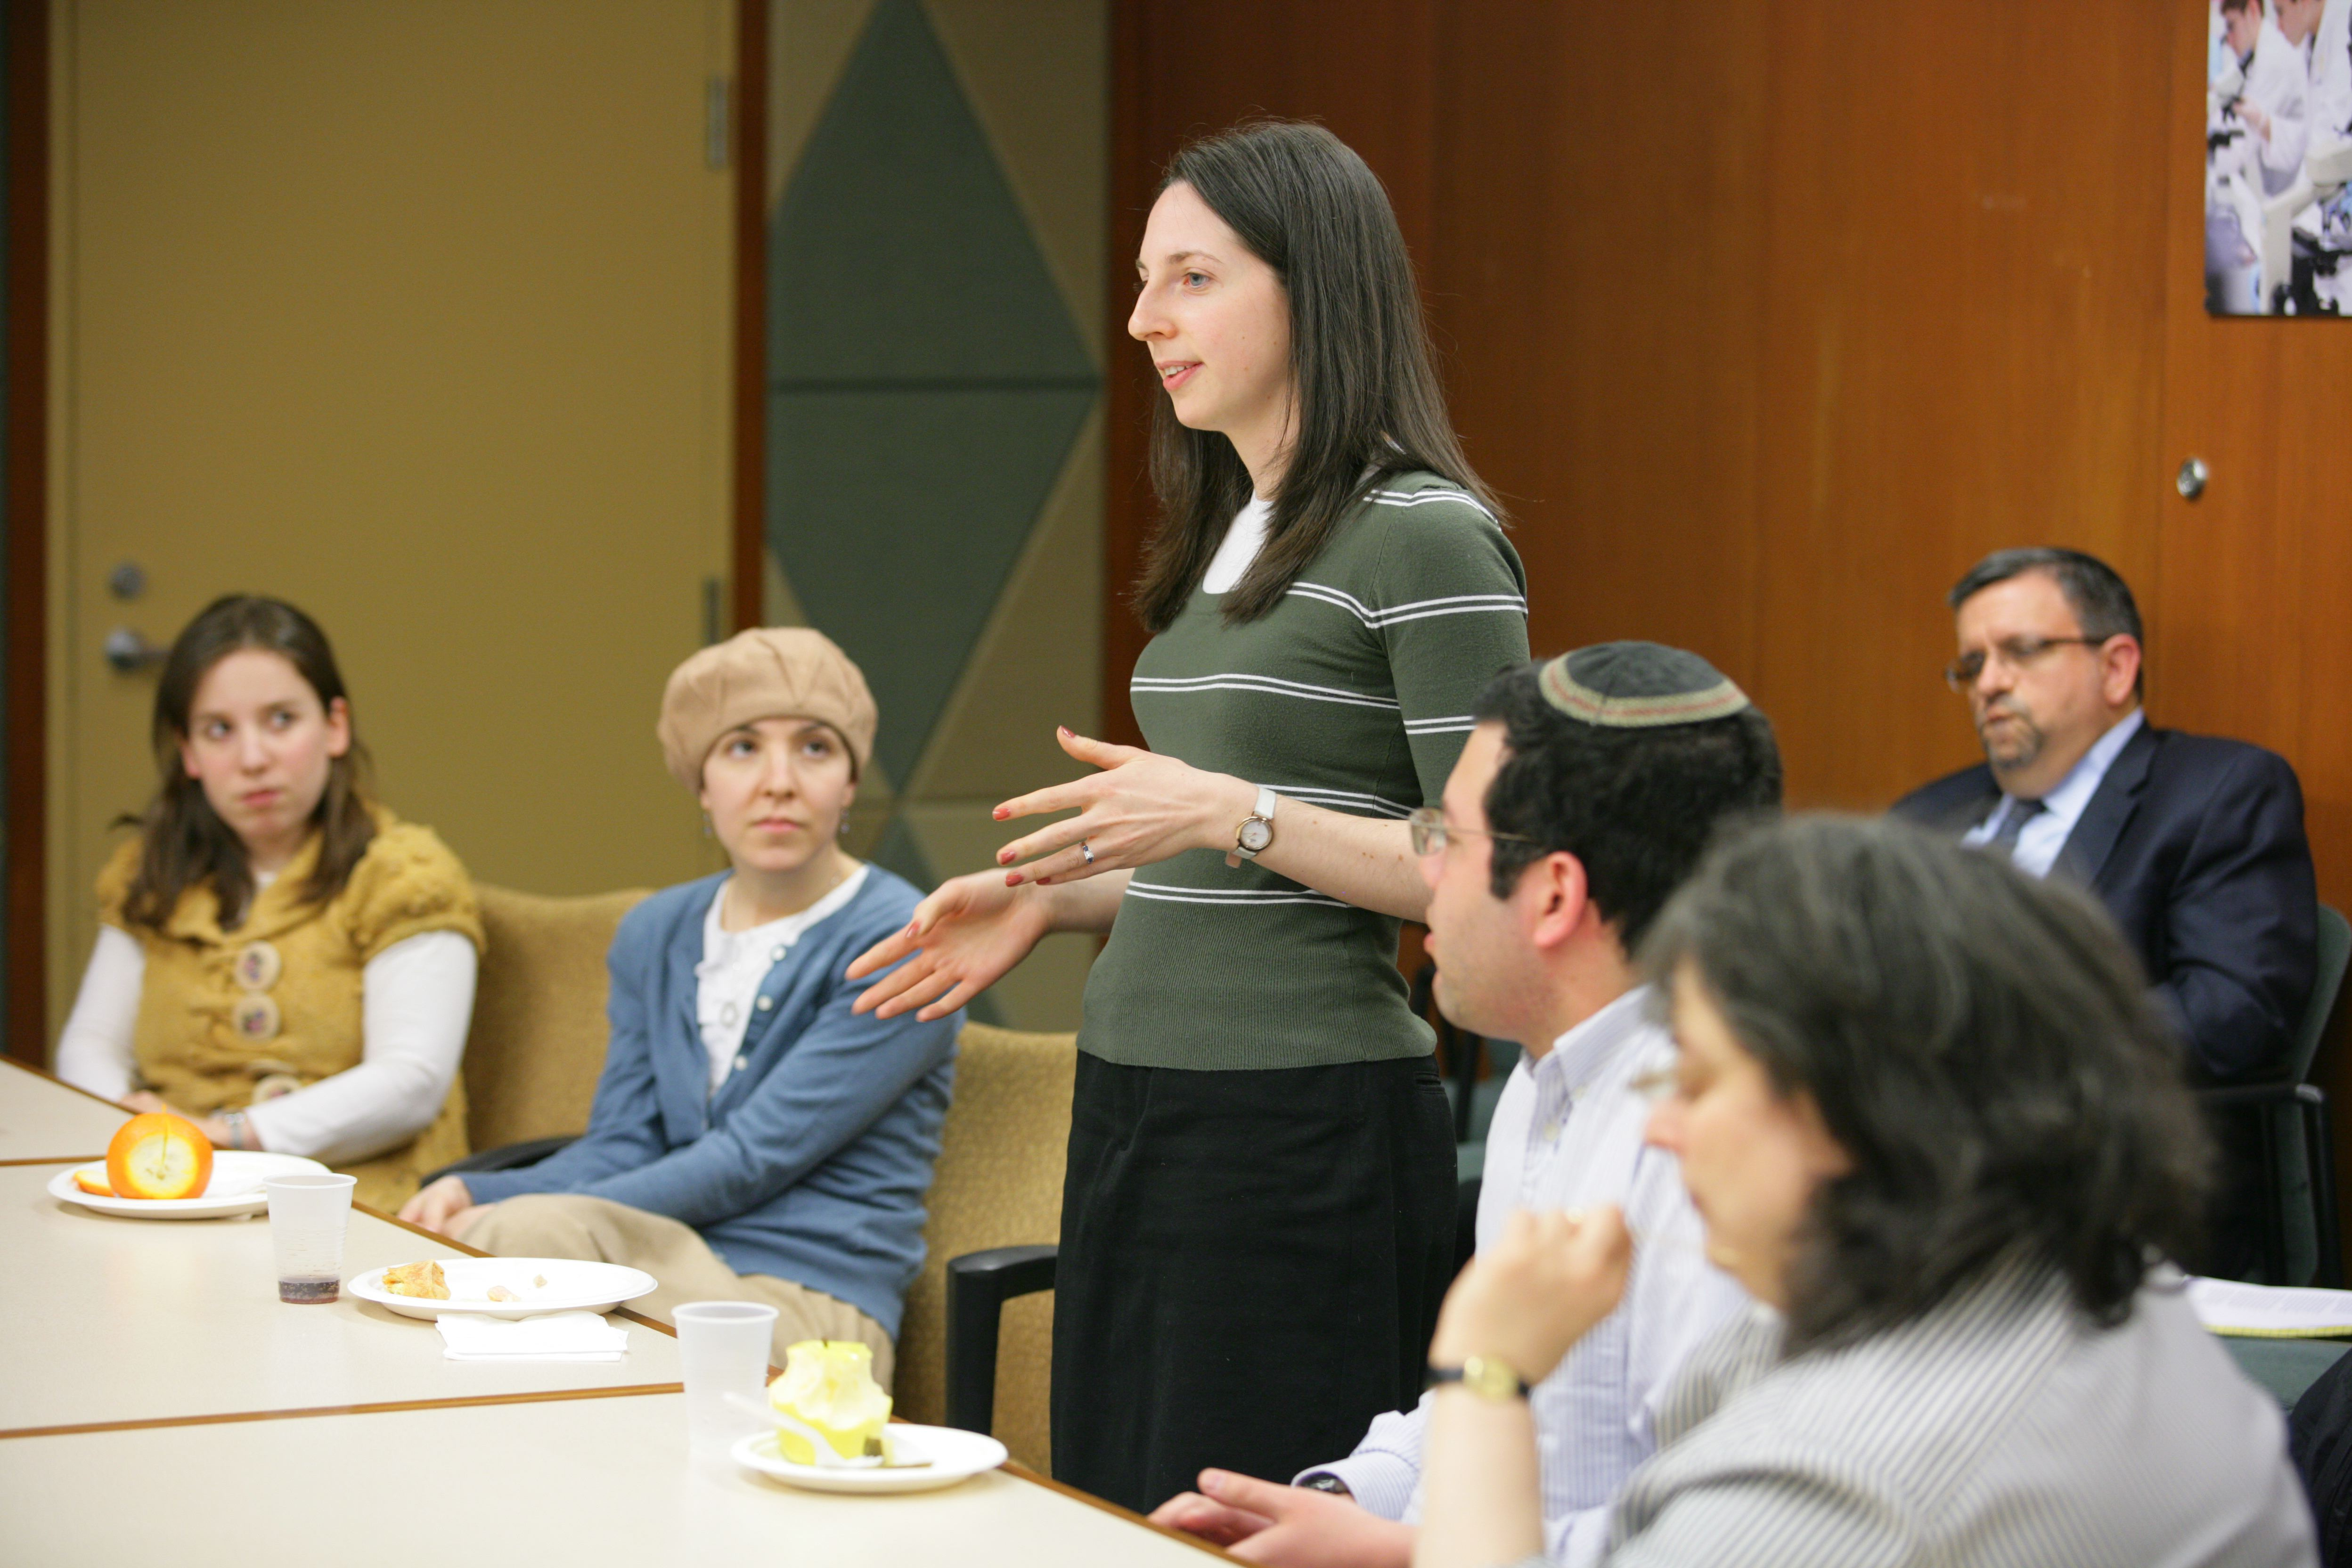 woman standing at table addressing group of students